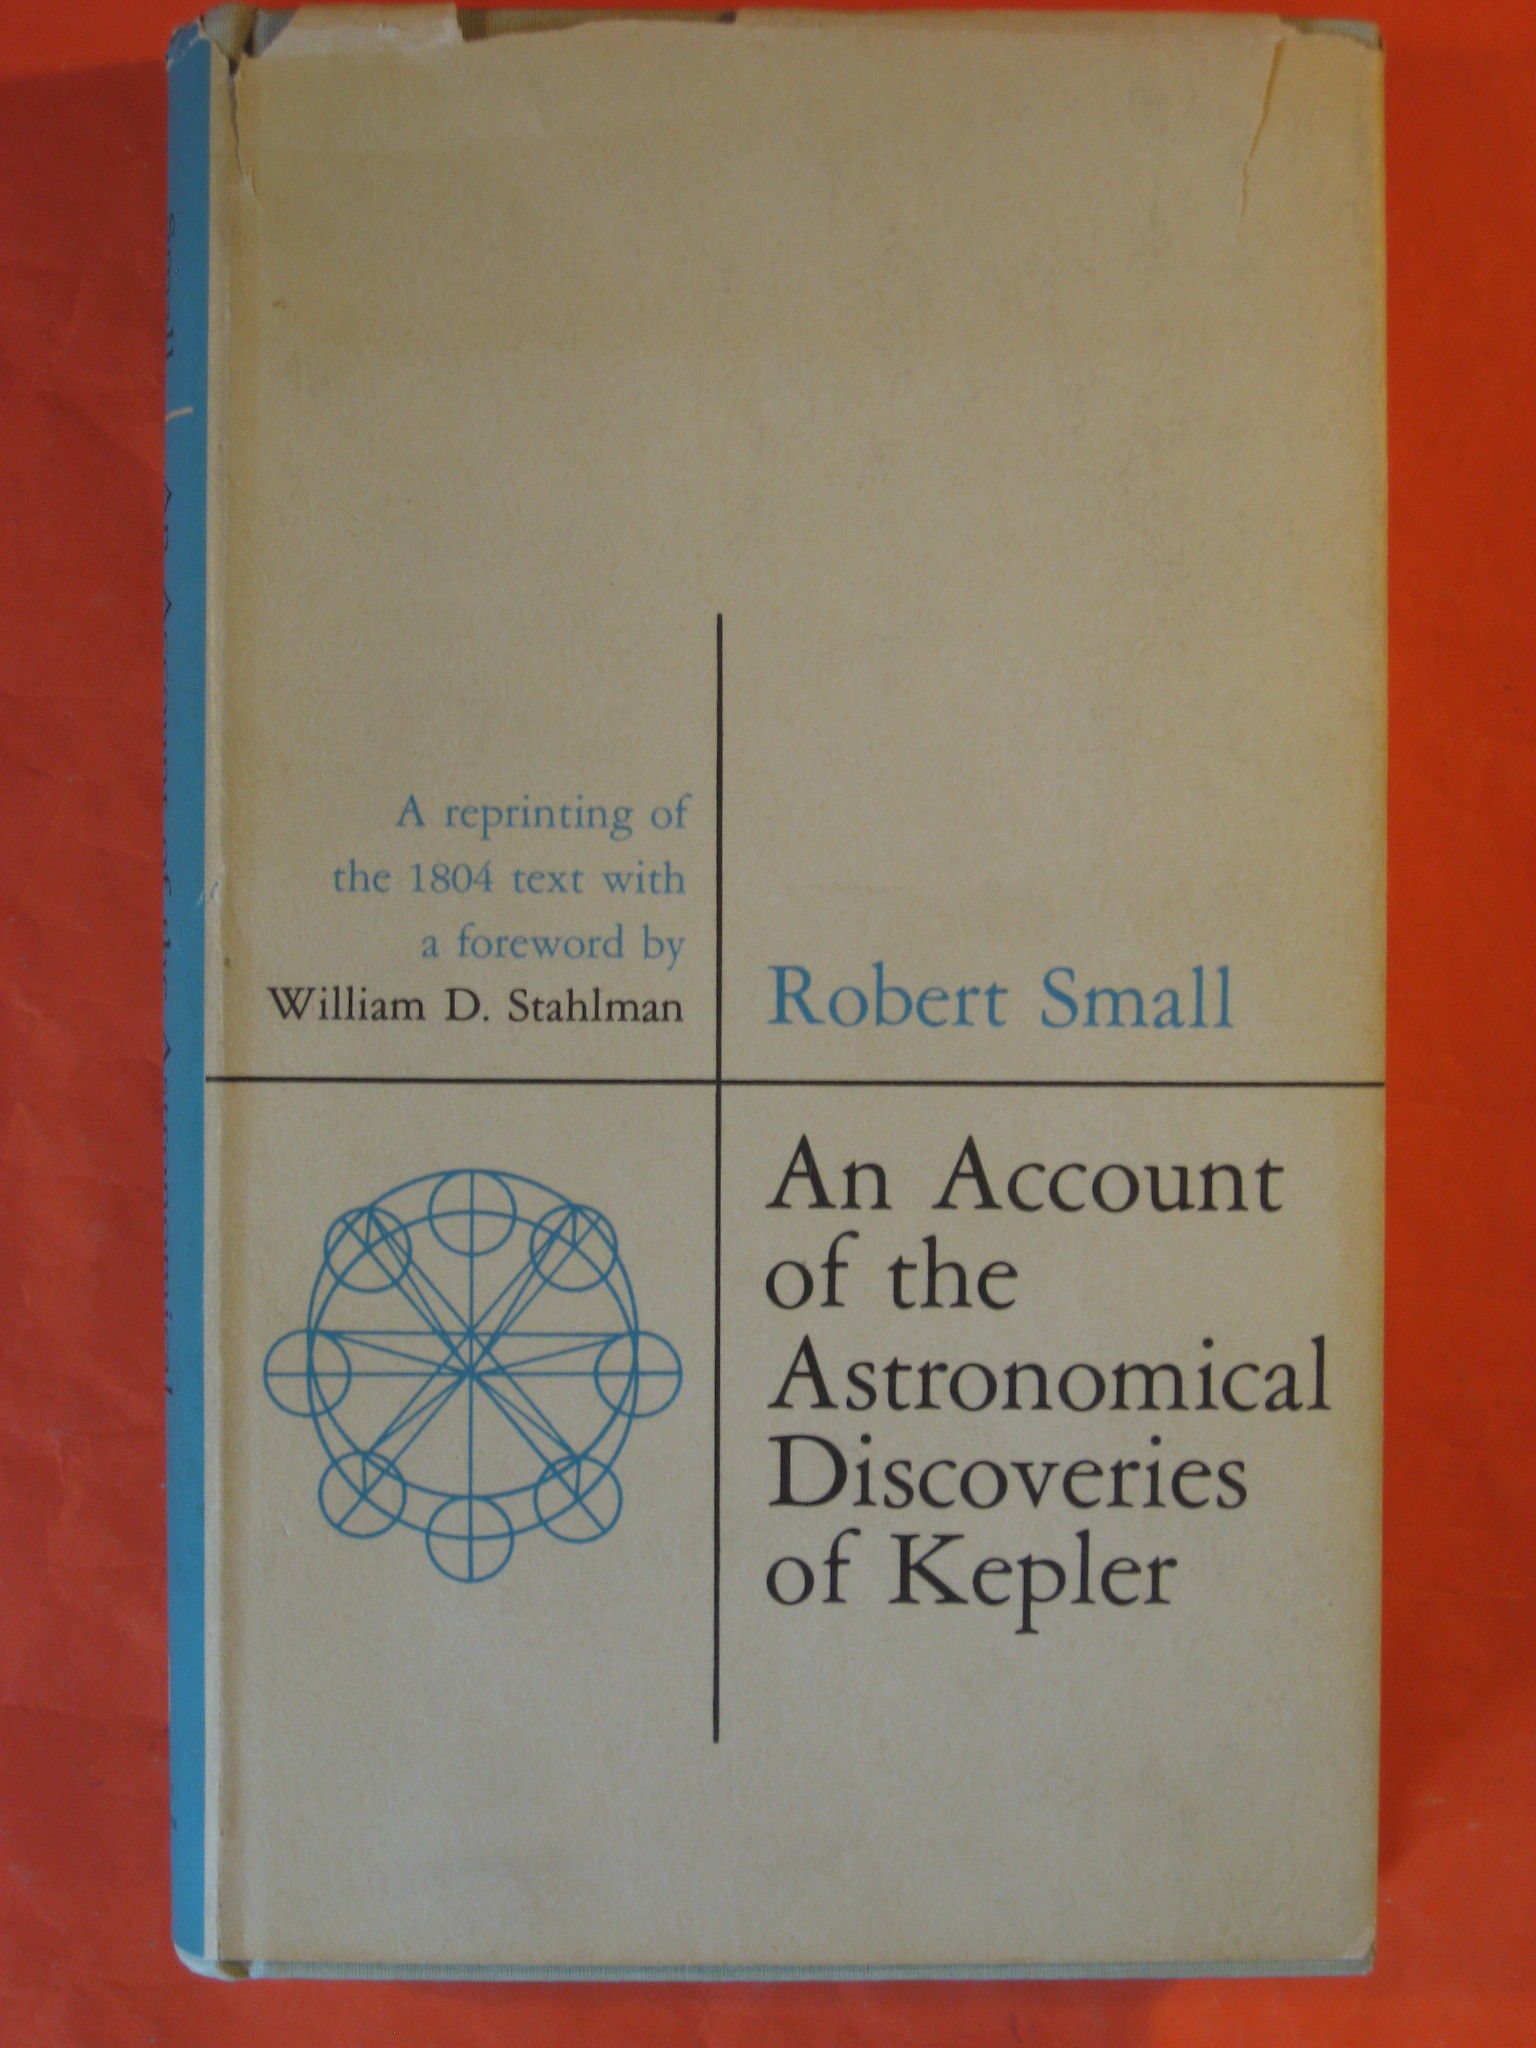 An Account of the Astronomical Discoveries of Kepler: a Reprinting of the 1804 Text with a Foreword By William D. Stahlman, Small, Robert